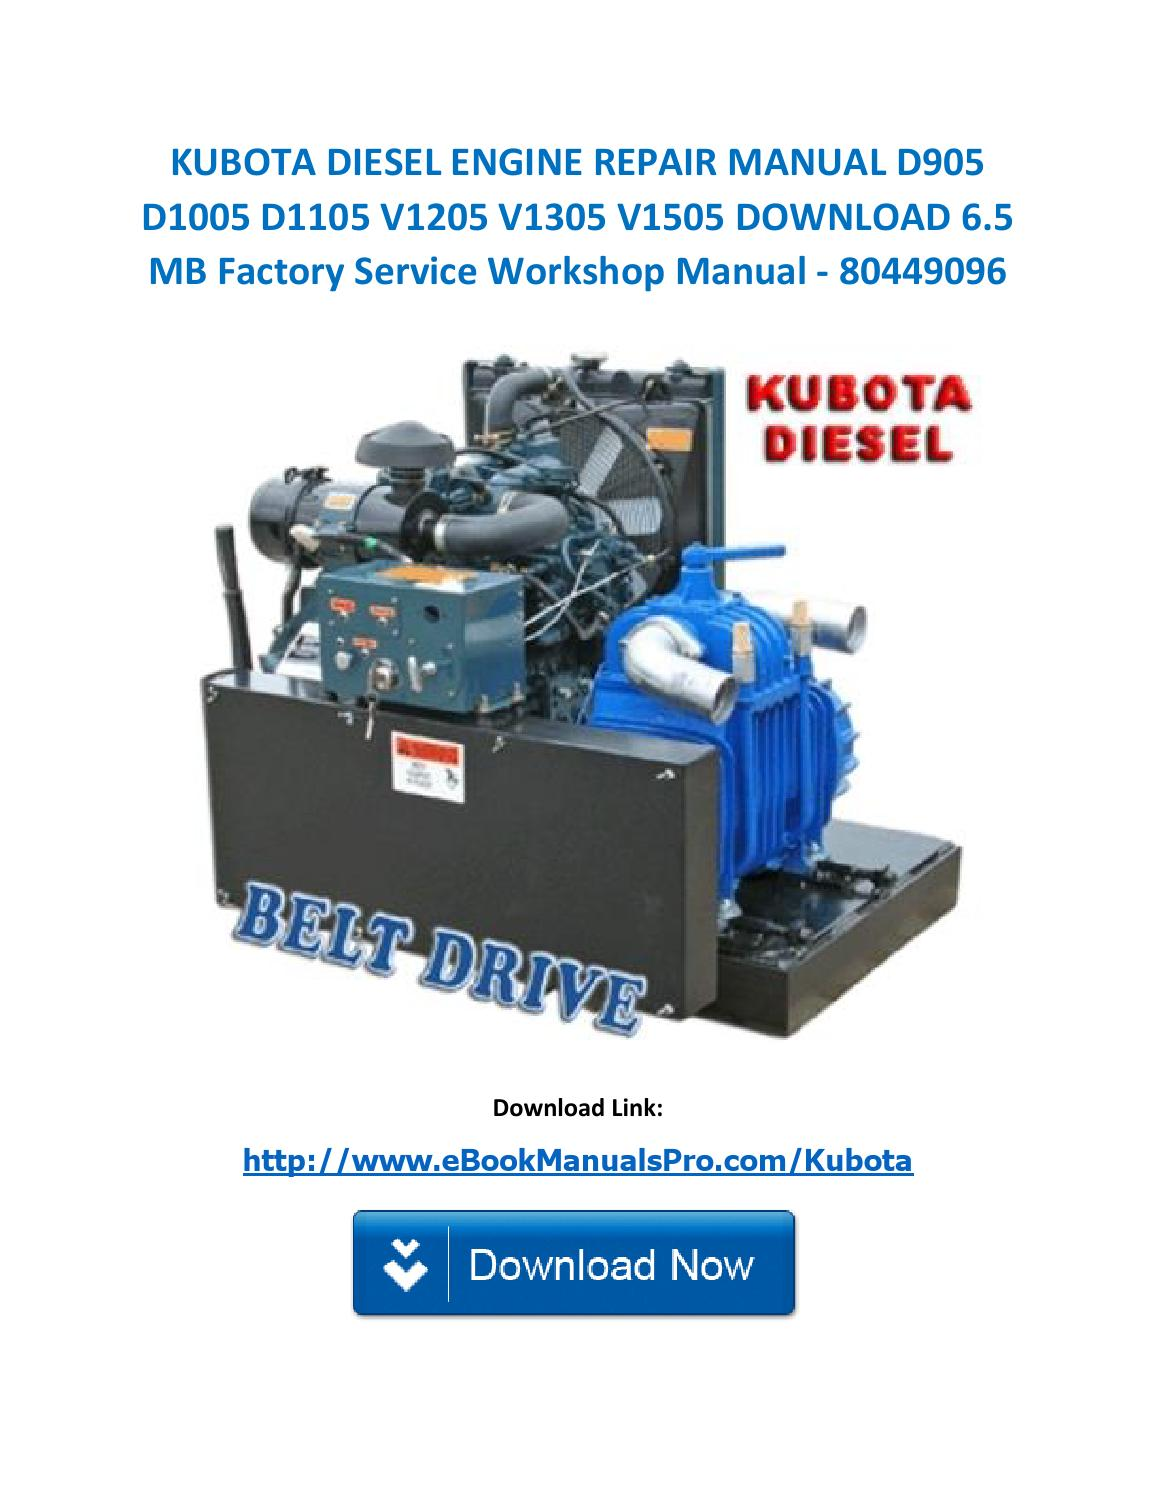 Kubota diesel engine repair manual d905 d1005 d1105 v1205 v1305 v1505  download 6 5 mb factory servic by karl casino - issuu